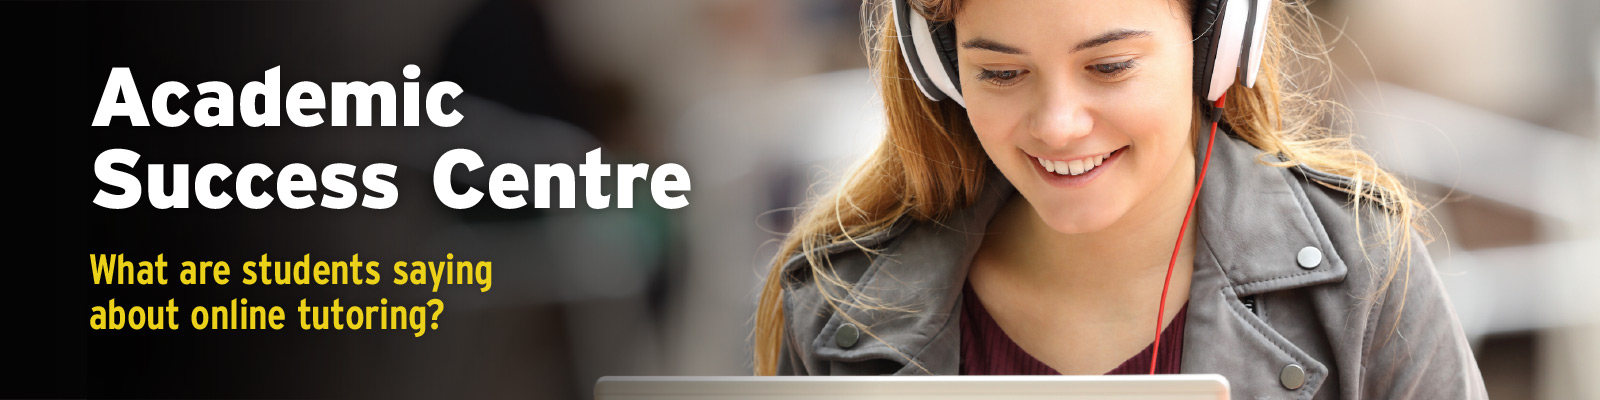 Text: Academic success centre: what are students saying about online tutoring? Image: student with headphones smiling and looking at laptop.